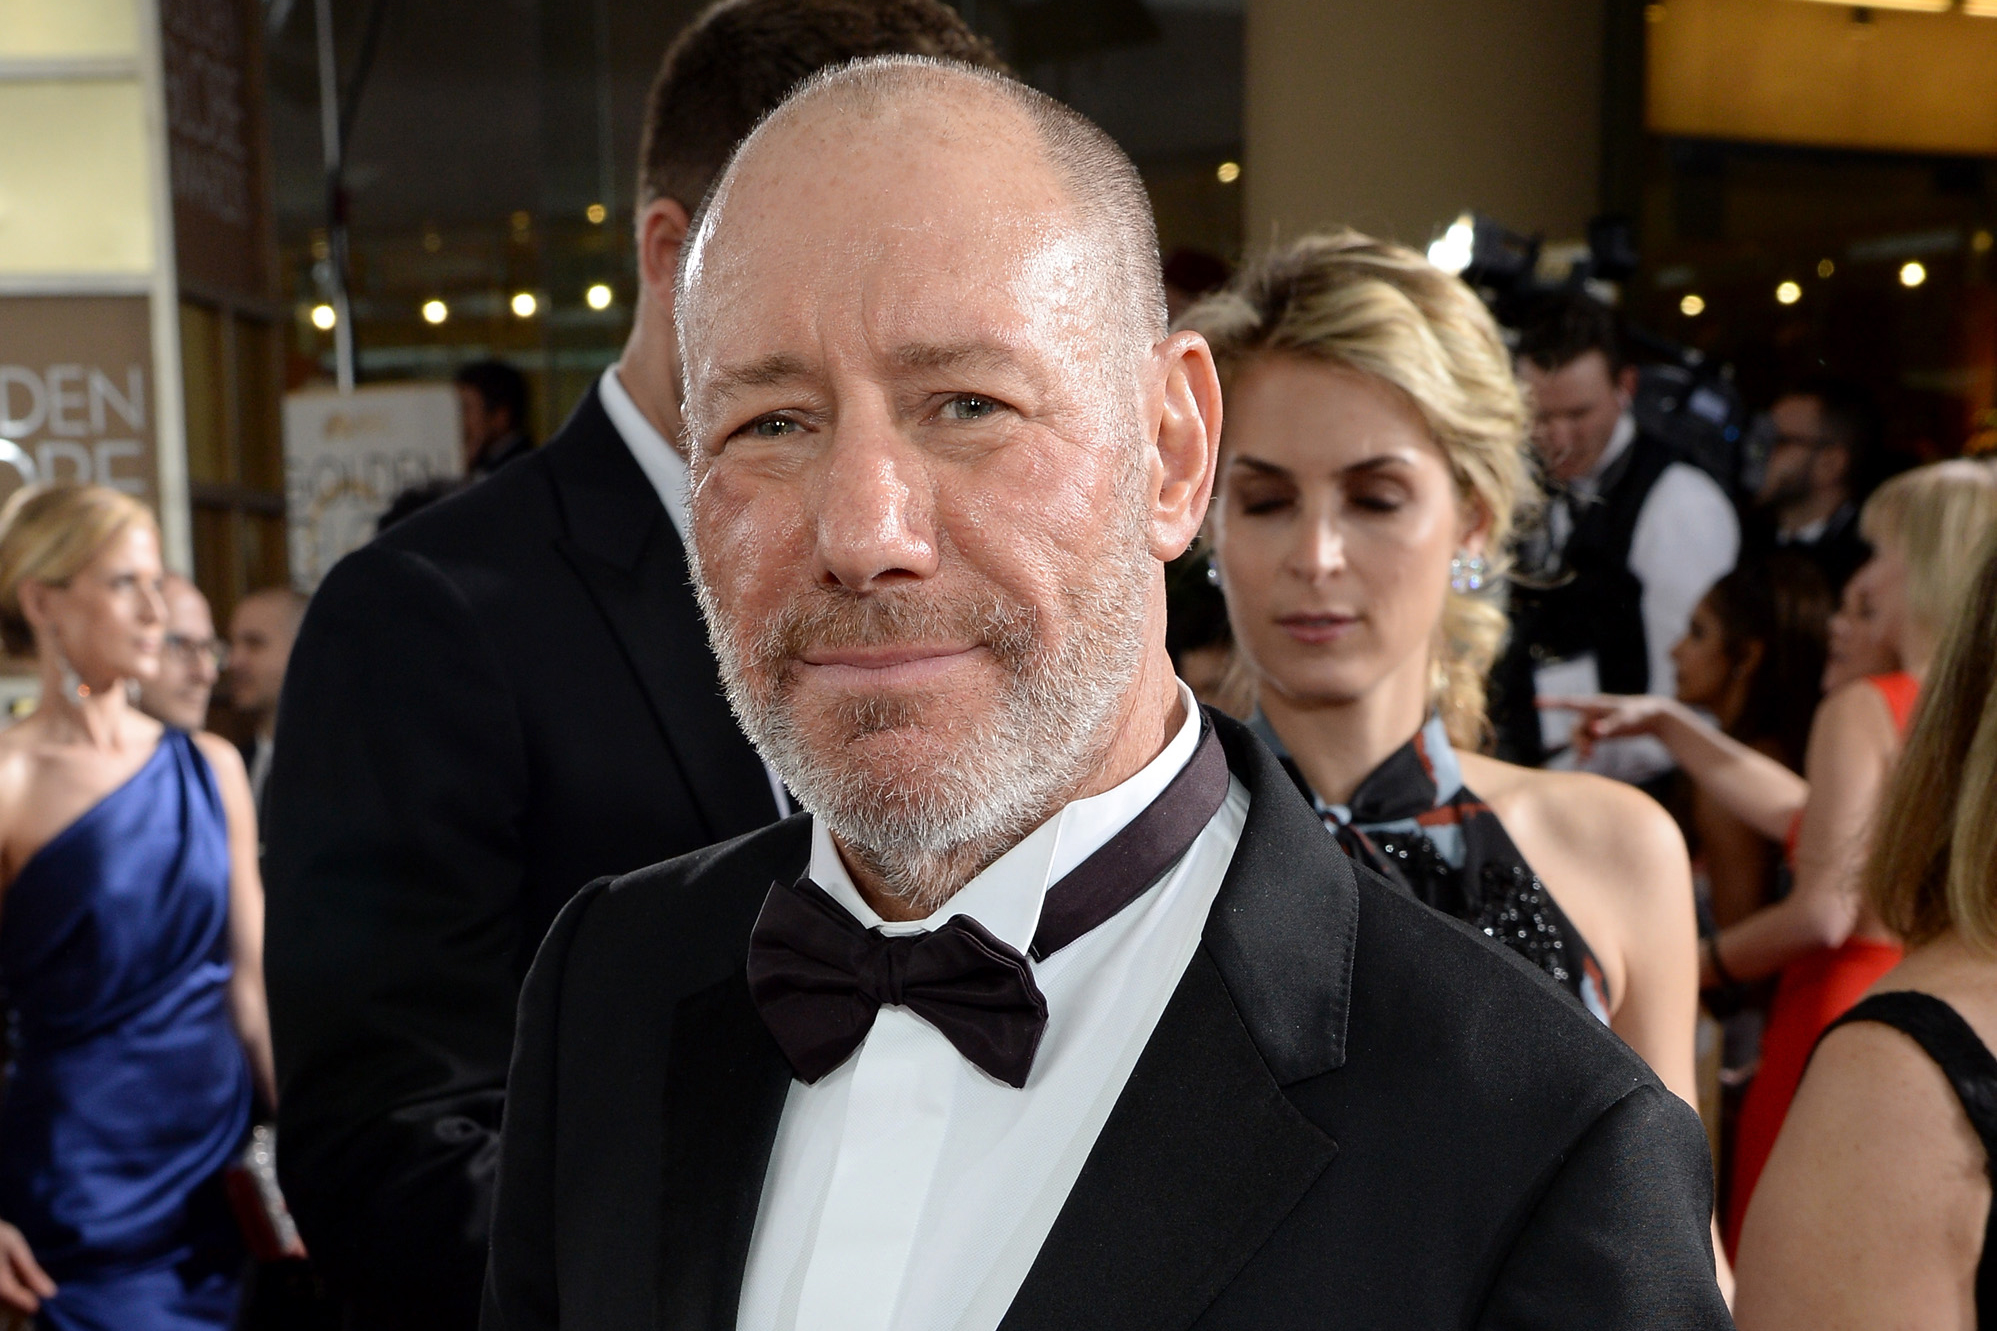 The ad industry says farewell to Steve Golin.